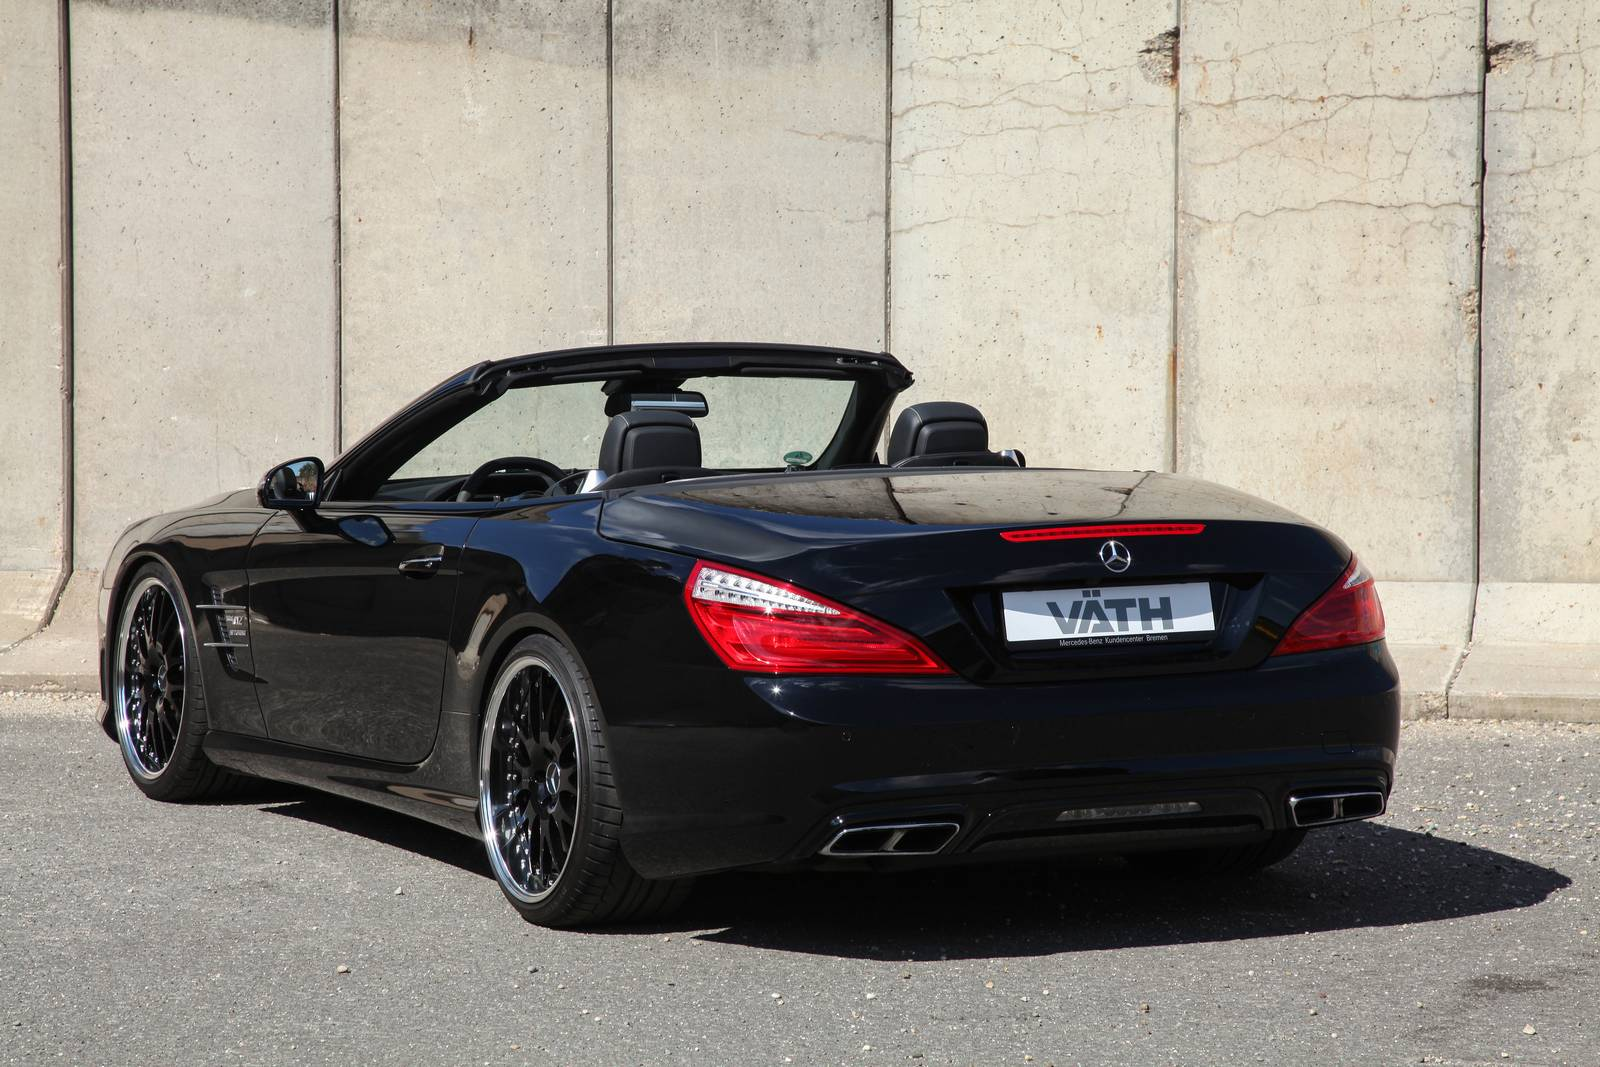 official 700hp vath mercedes amg sl 65 gtspirit. Black Bedroom Furniture Sets. Home Design Ideas